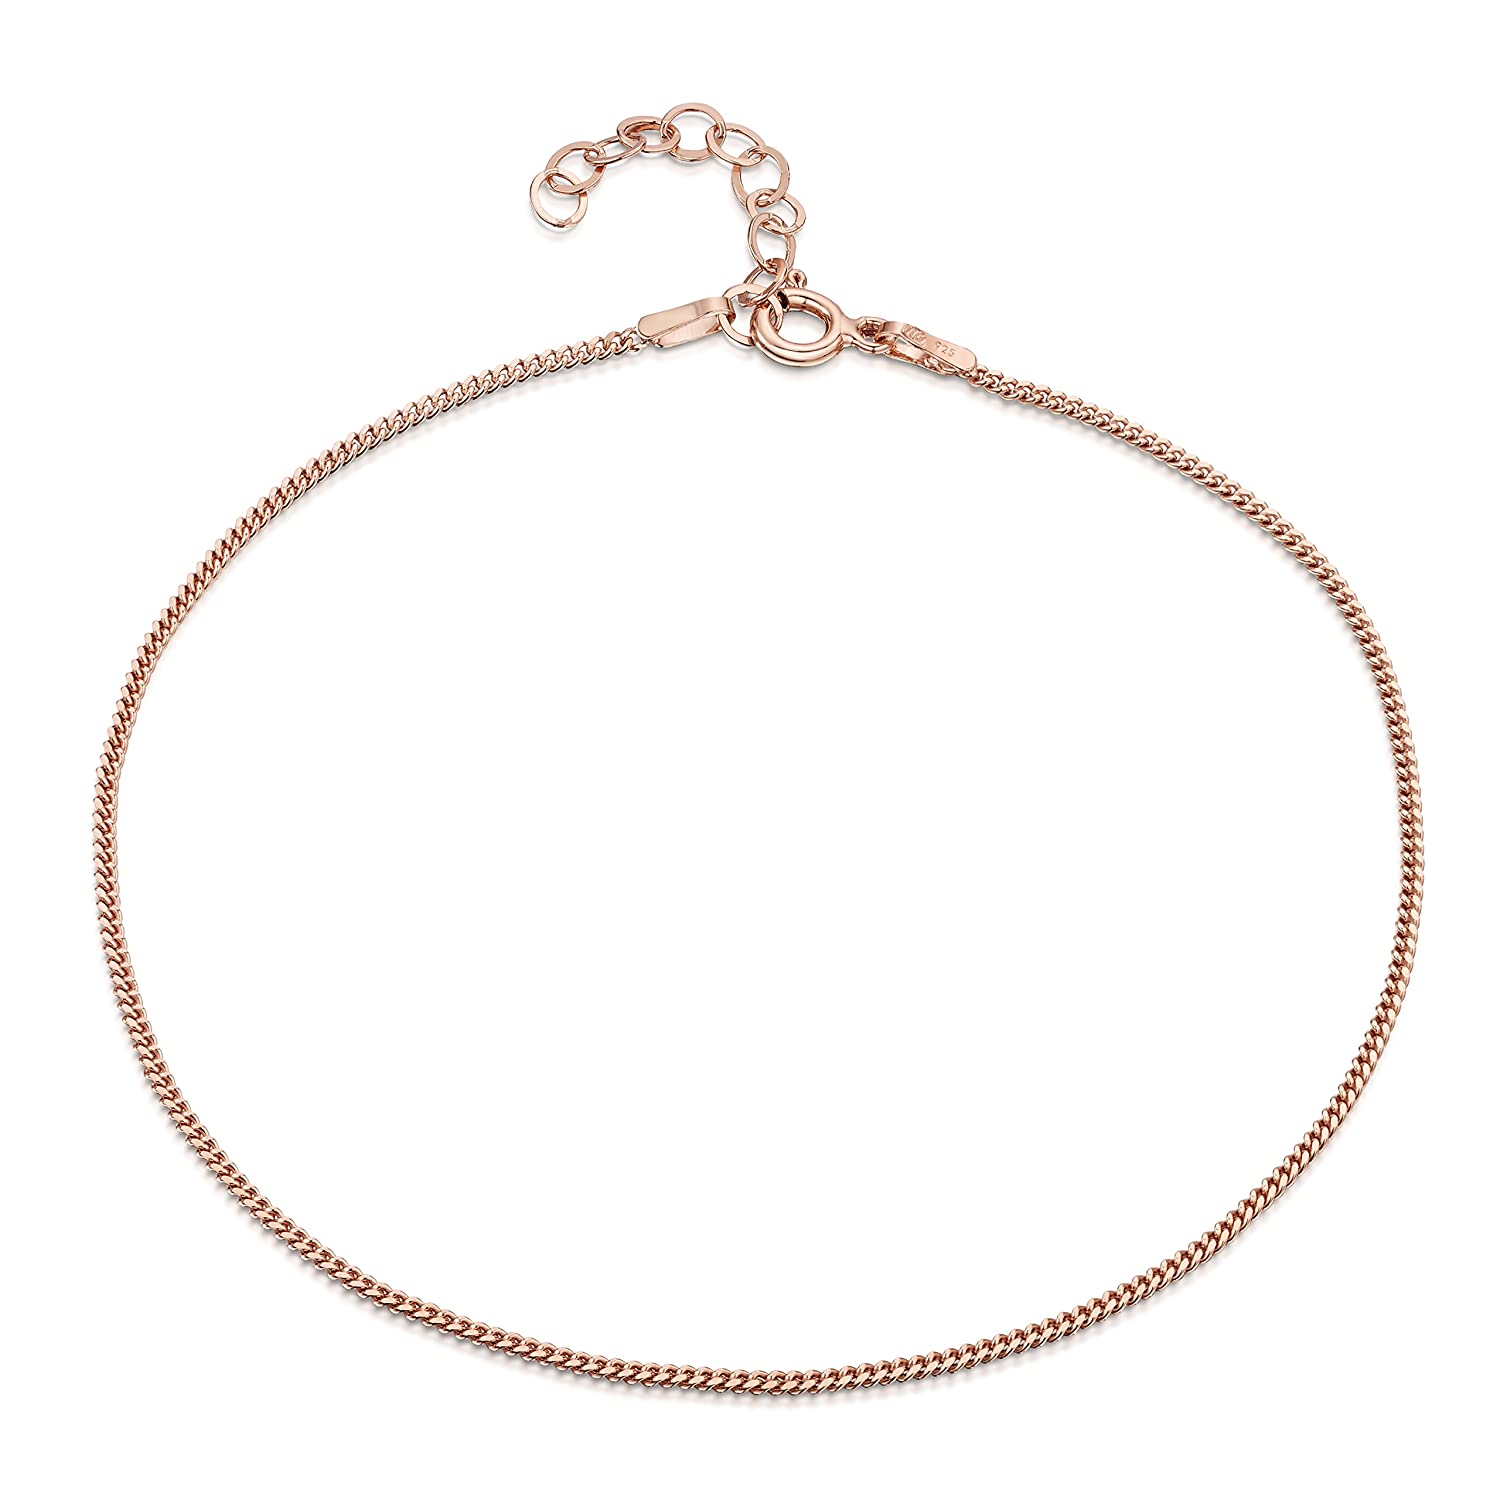 14K Rose Gold Plated on 925 Sterling Silver Adjustable Anklet - Classic Chain Ankle Bracelets - 9